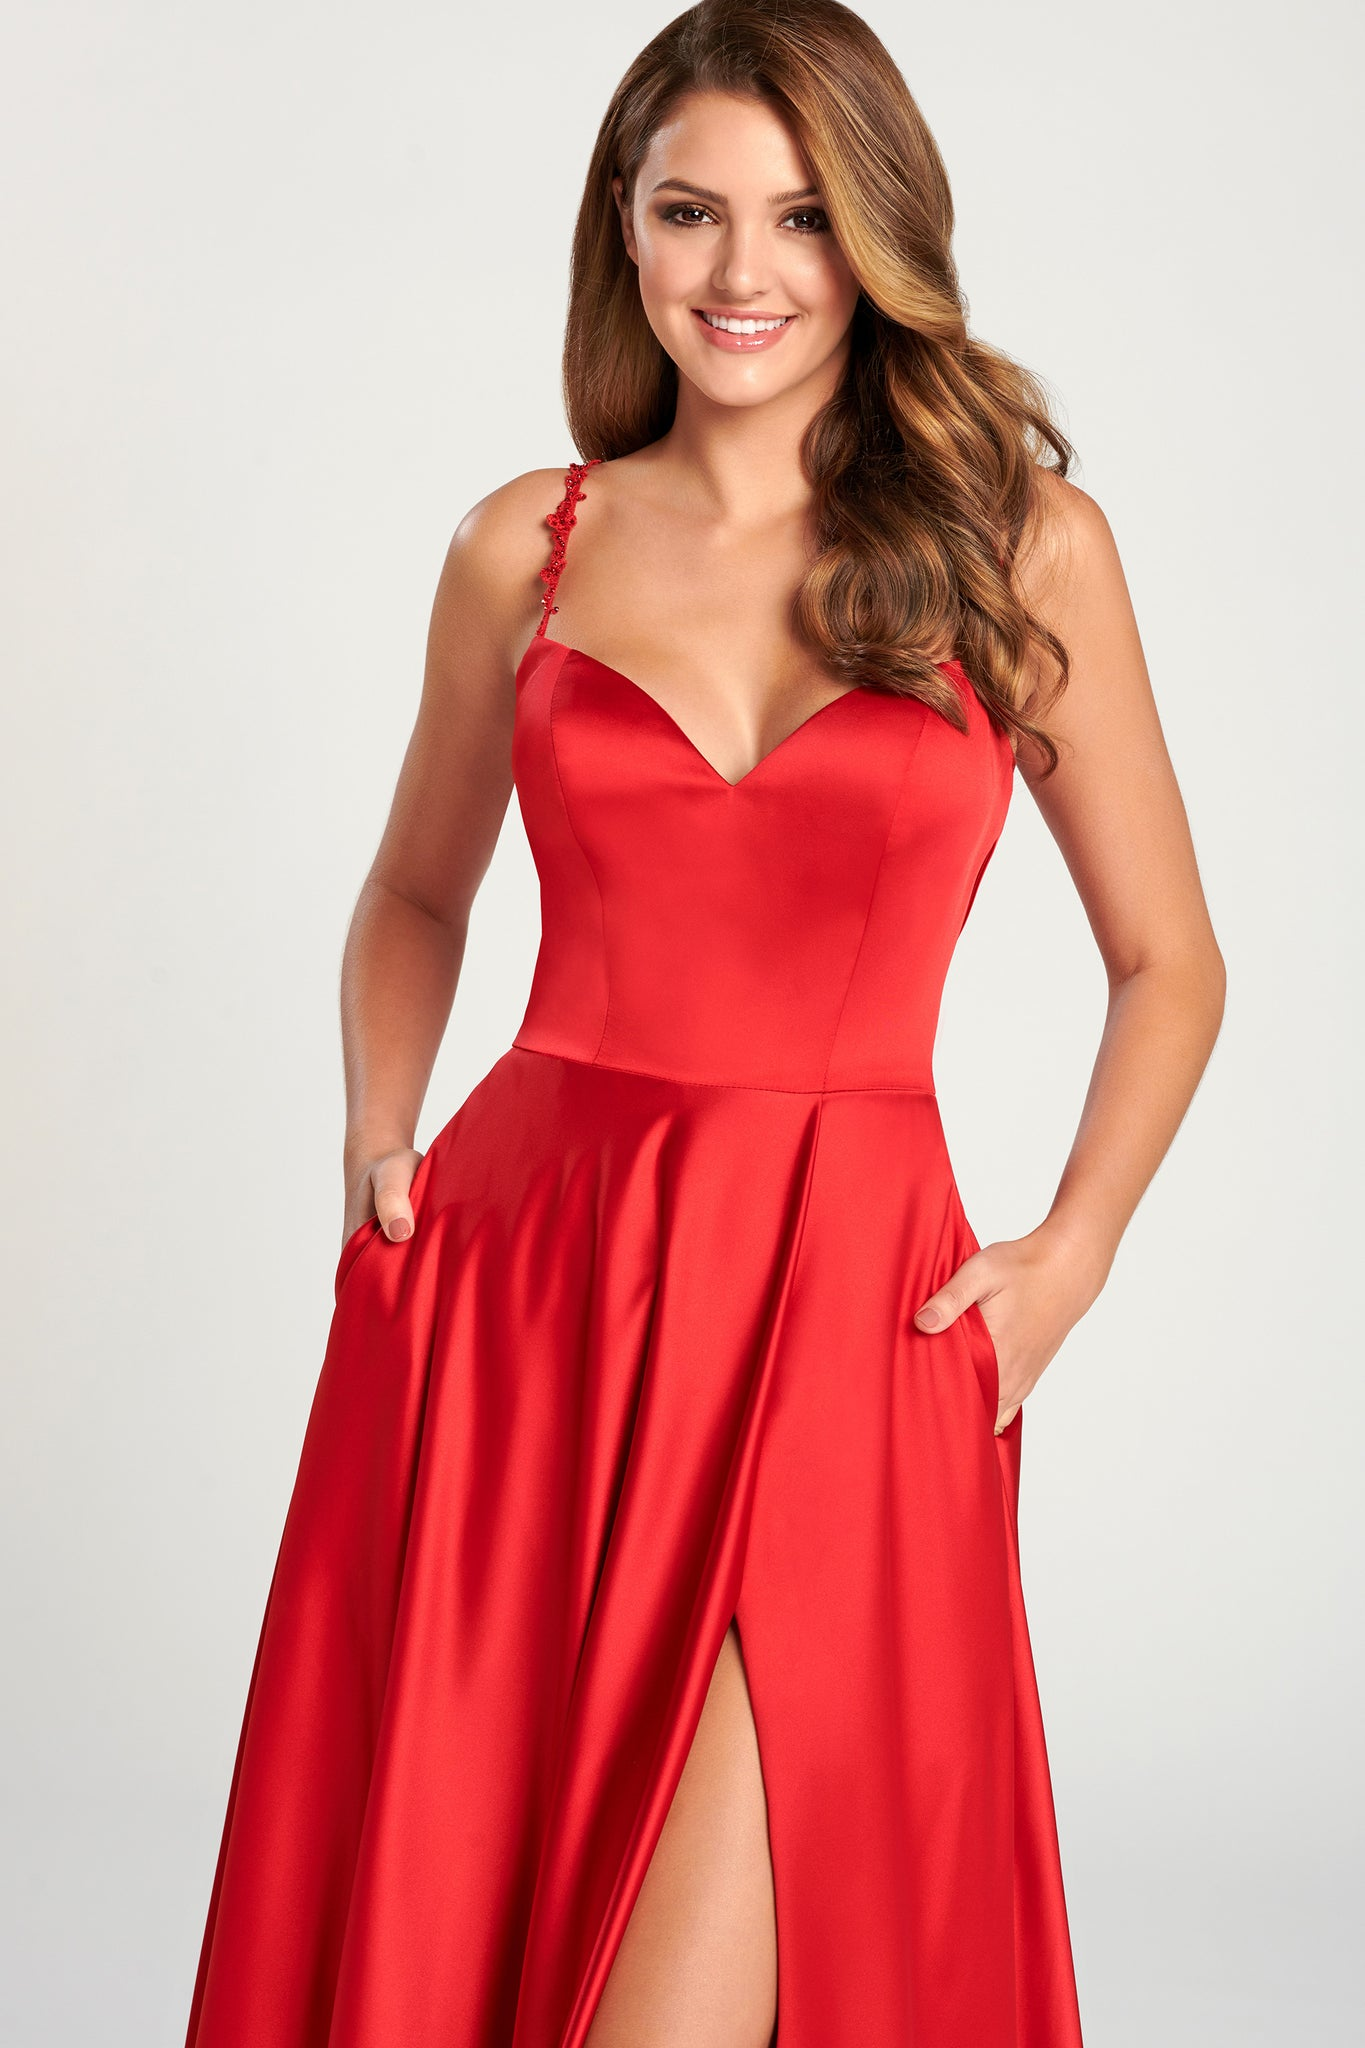 Ellie Wilde Ruby Red Satin Evening Gown